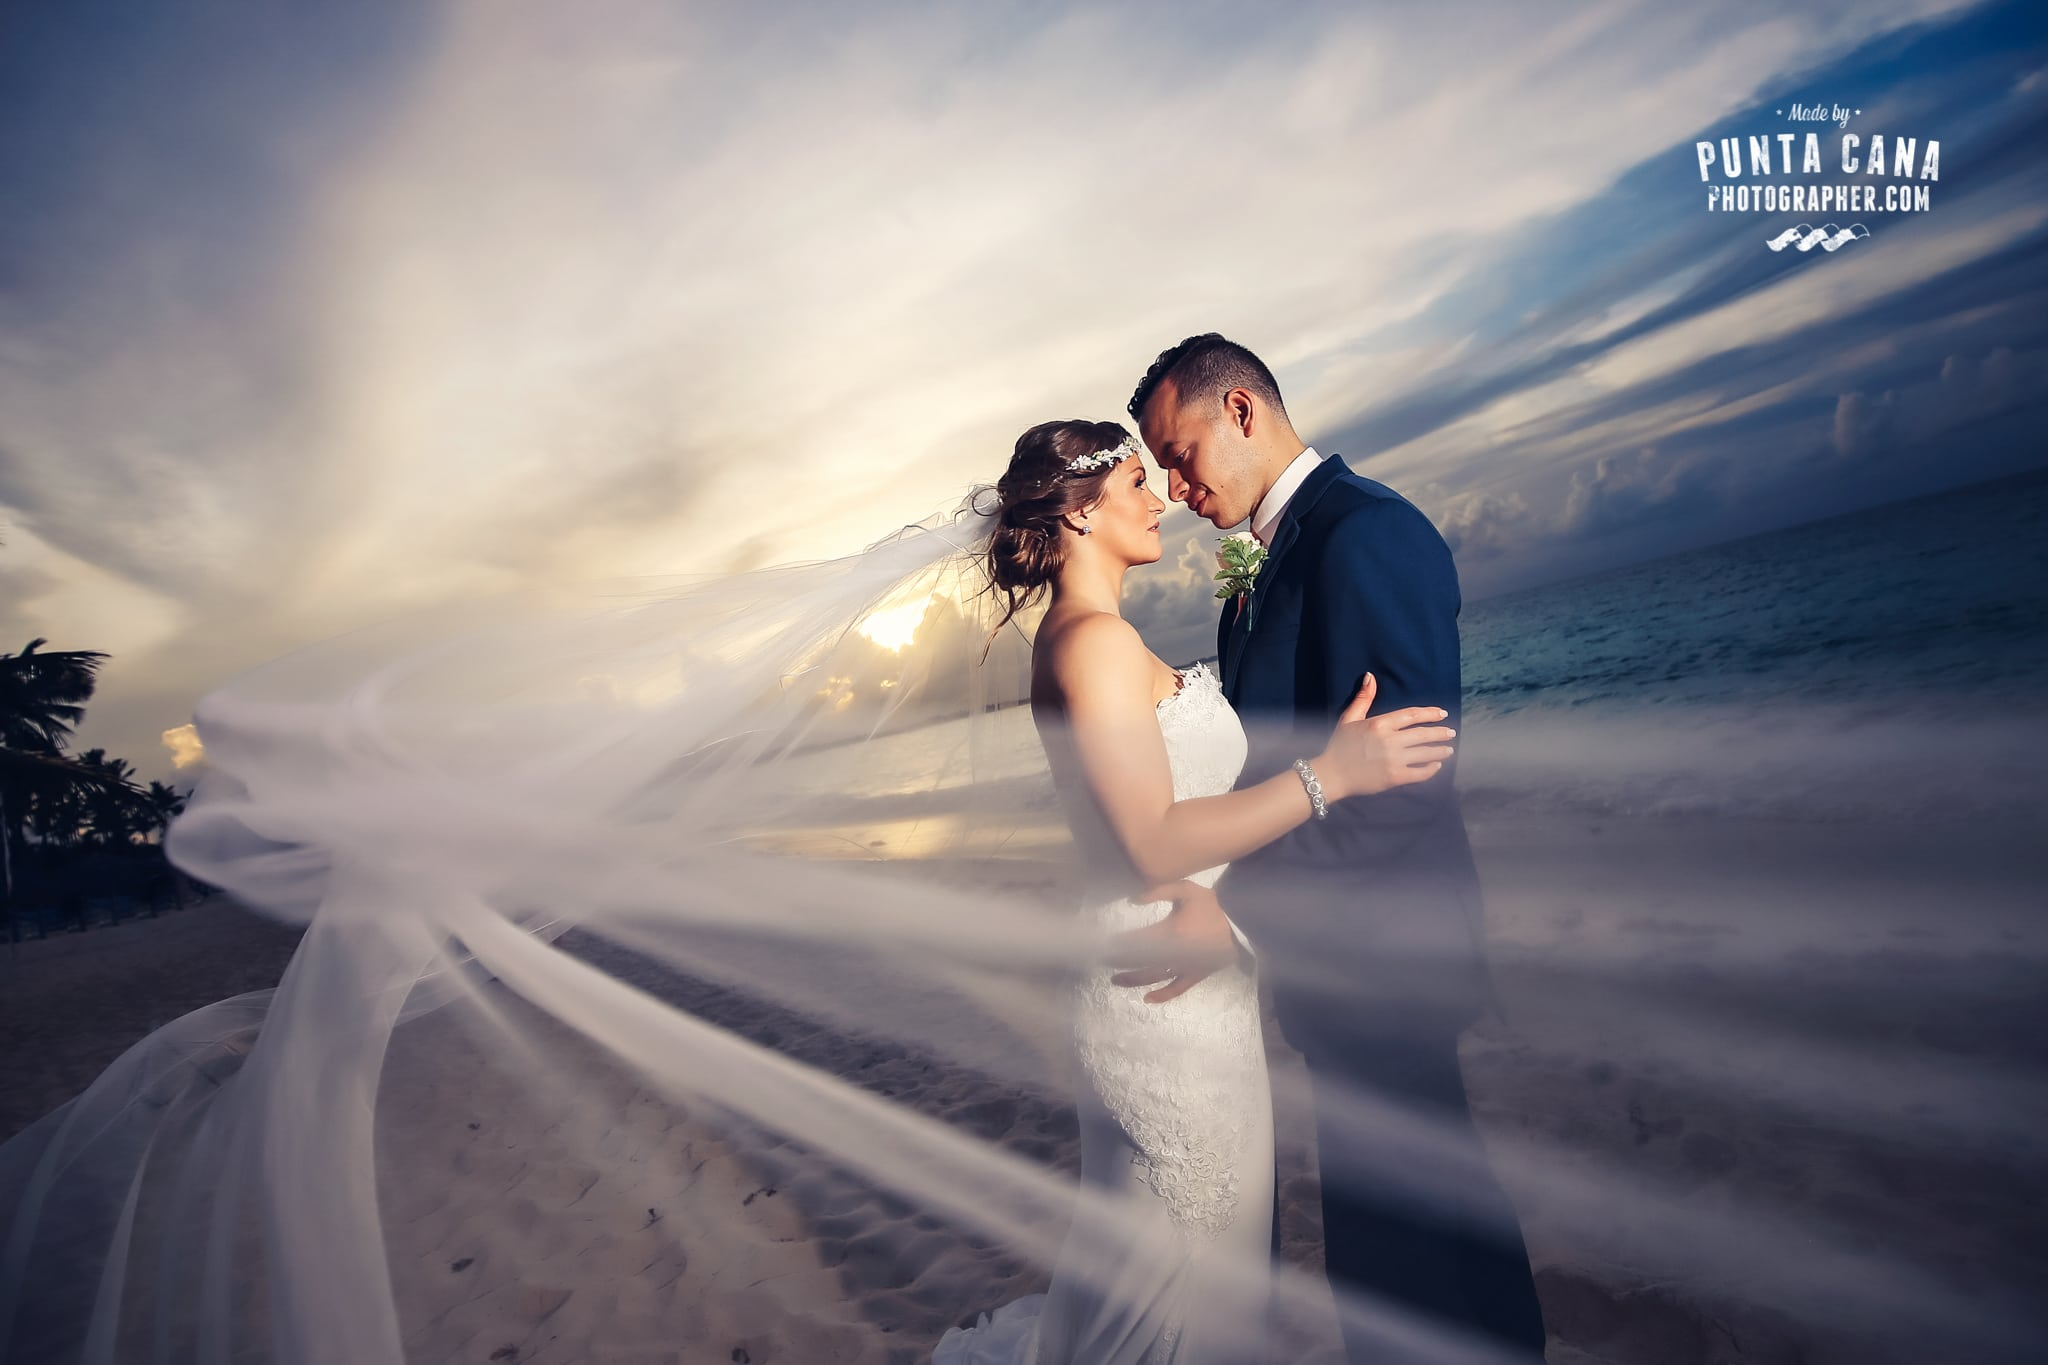 Destination Wedding Tips